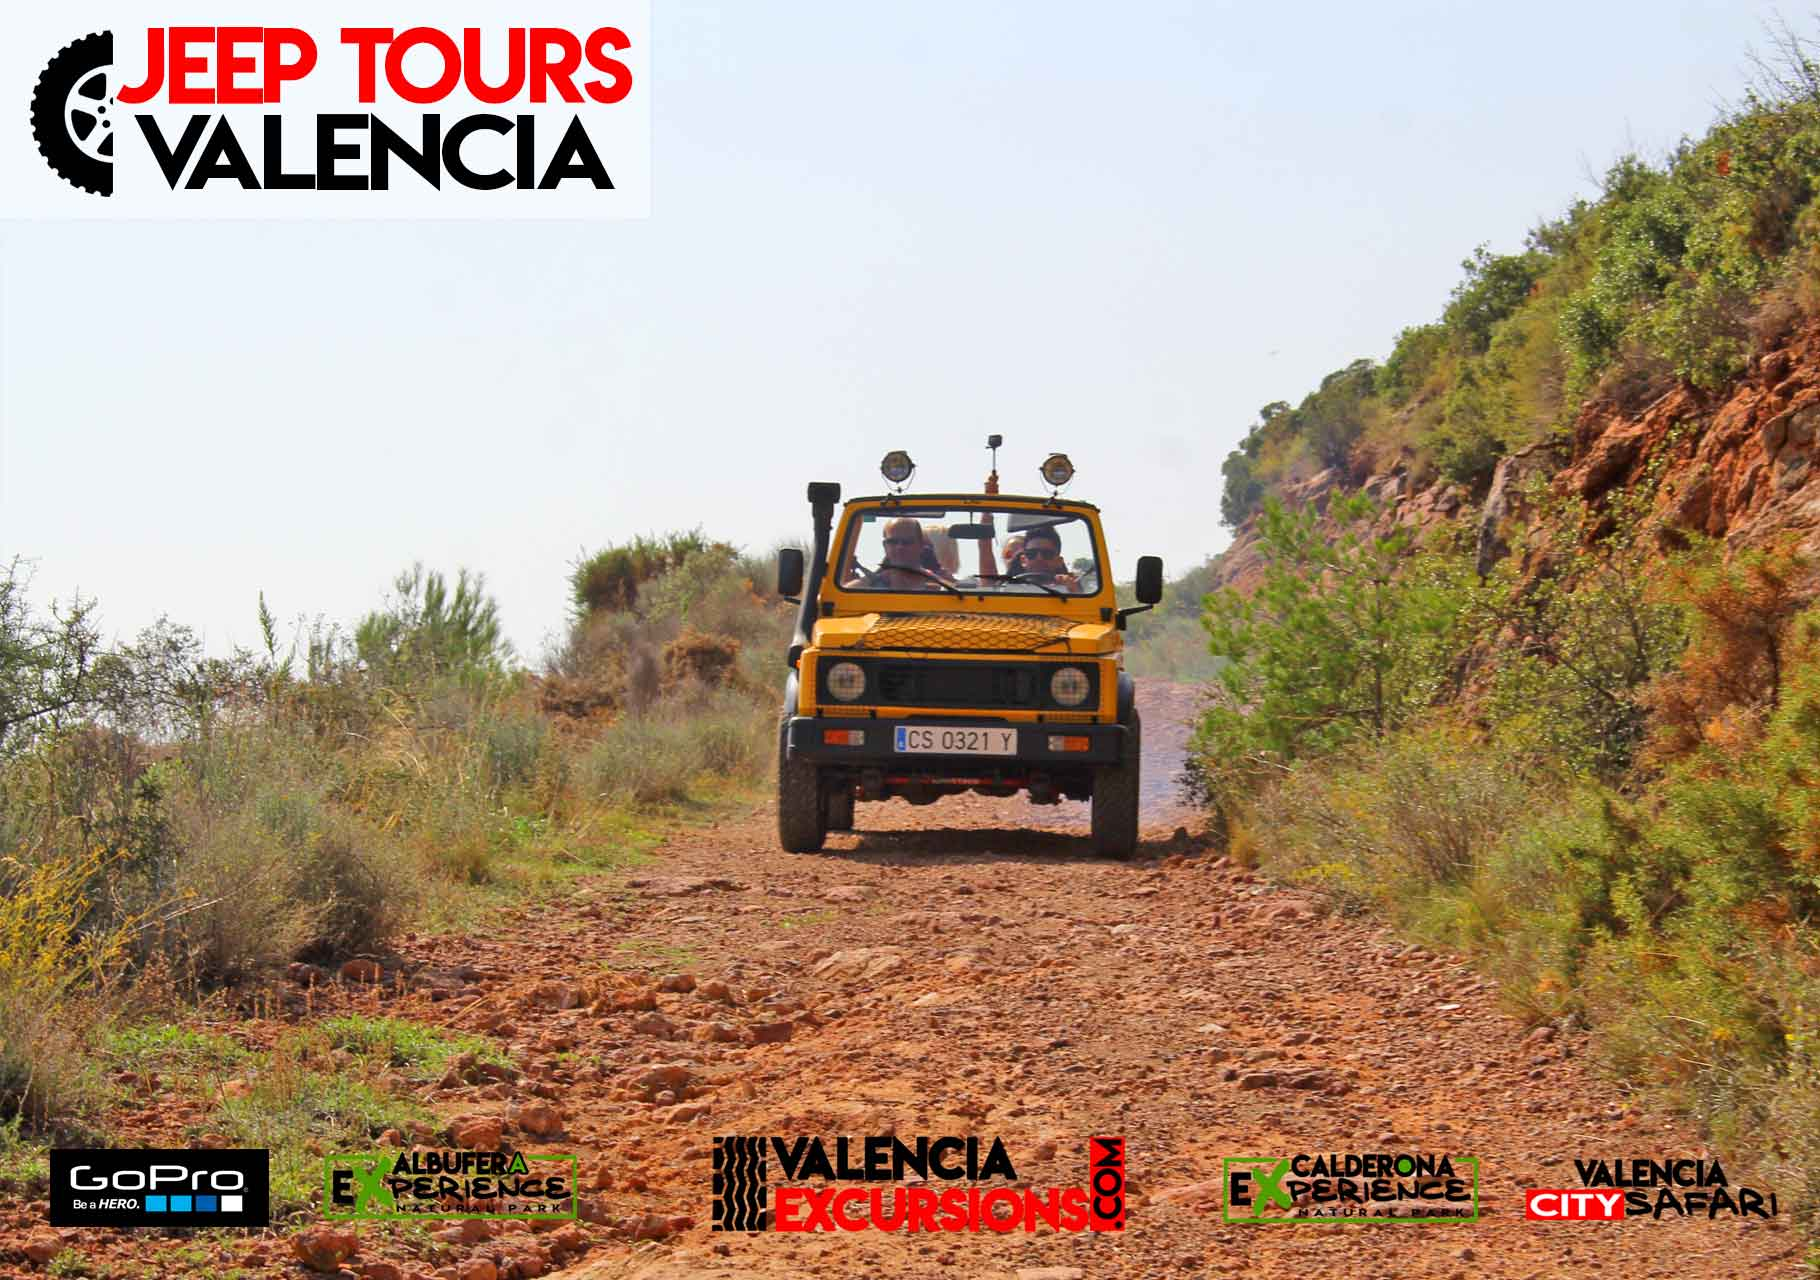 Jeep tour in Valencia. Driving along Calderona NAtional PArk VAlencia.